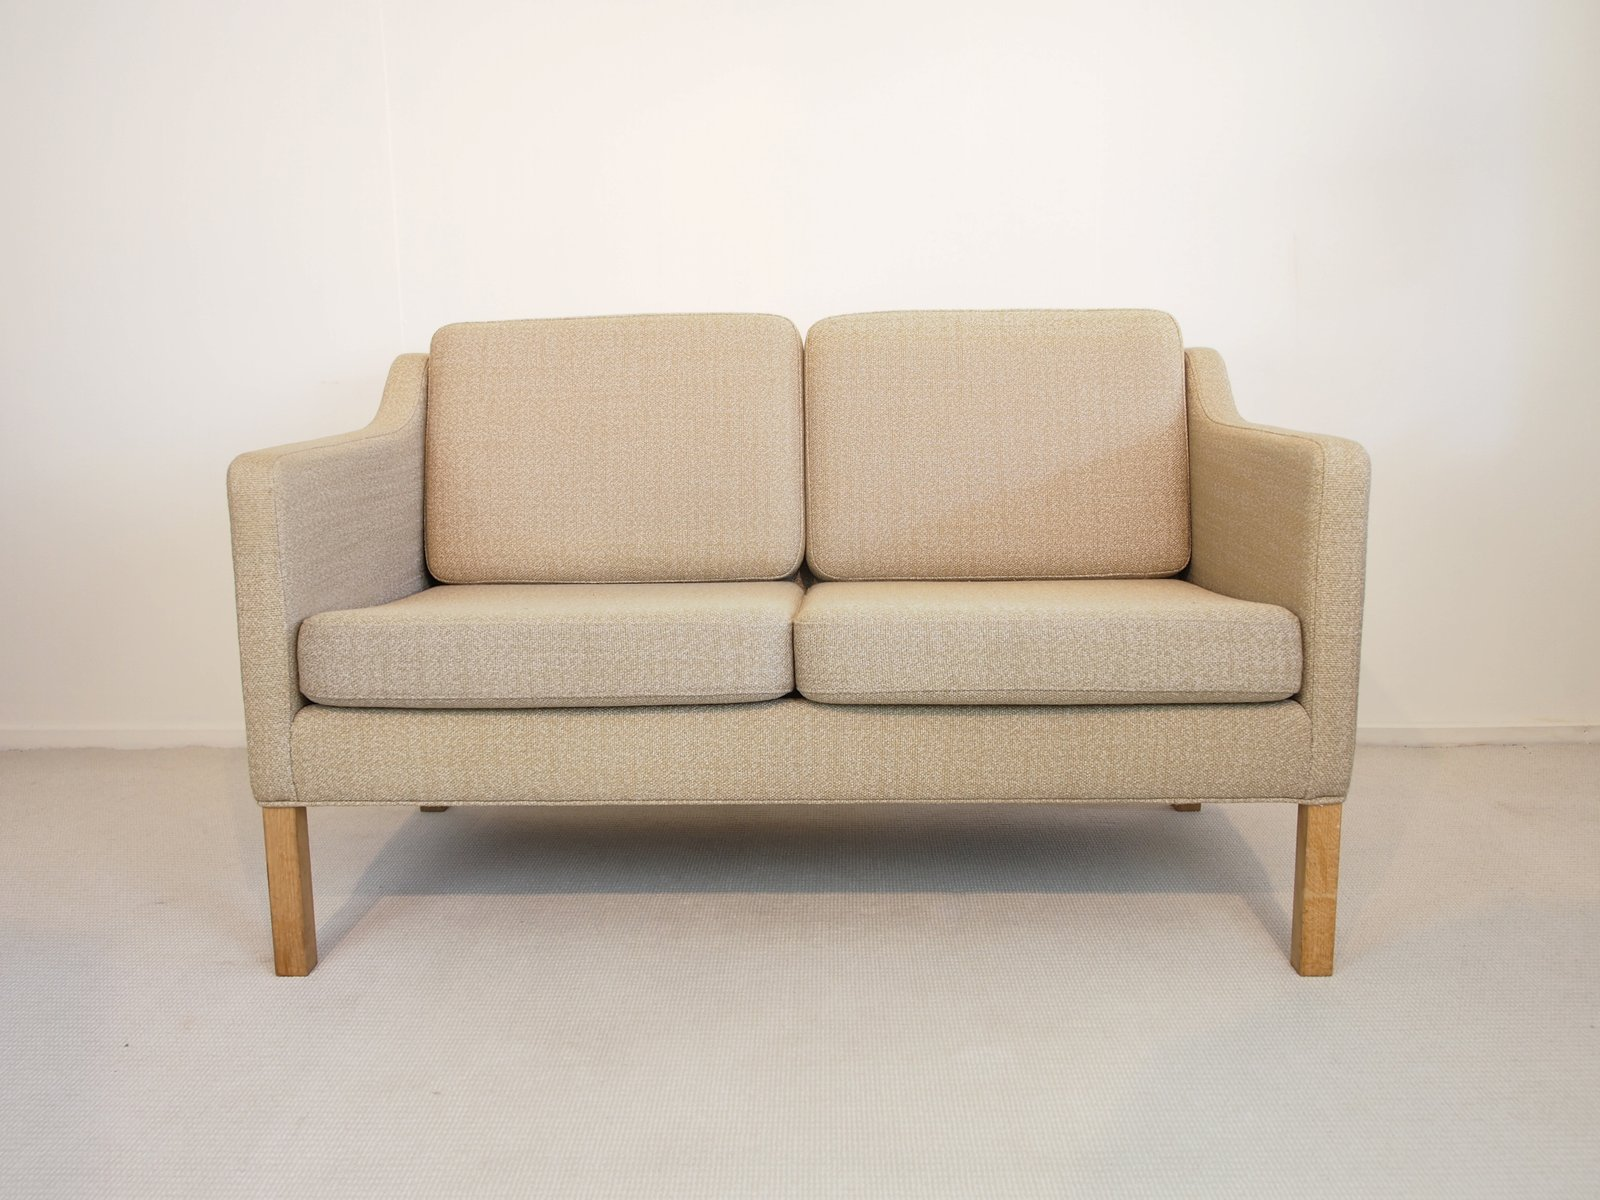 Vintage Model 2322 Two Seater Sofa By Børge Mogensen For Frederica